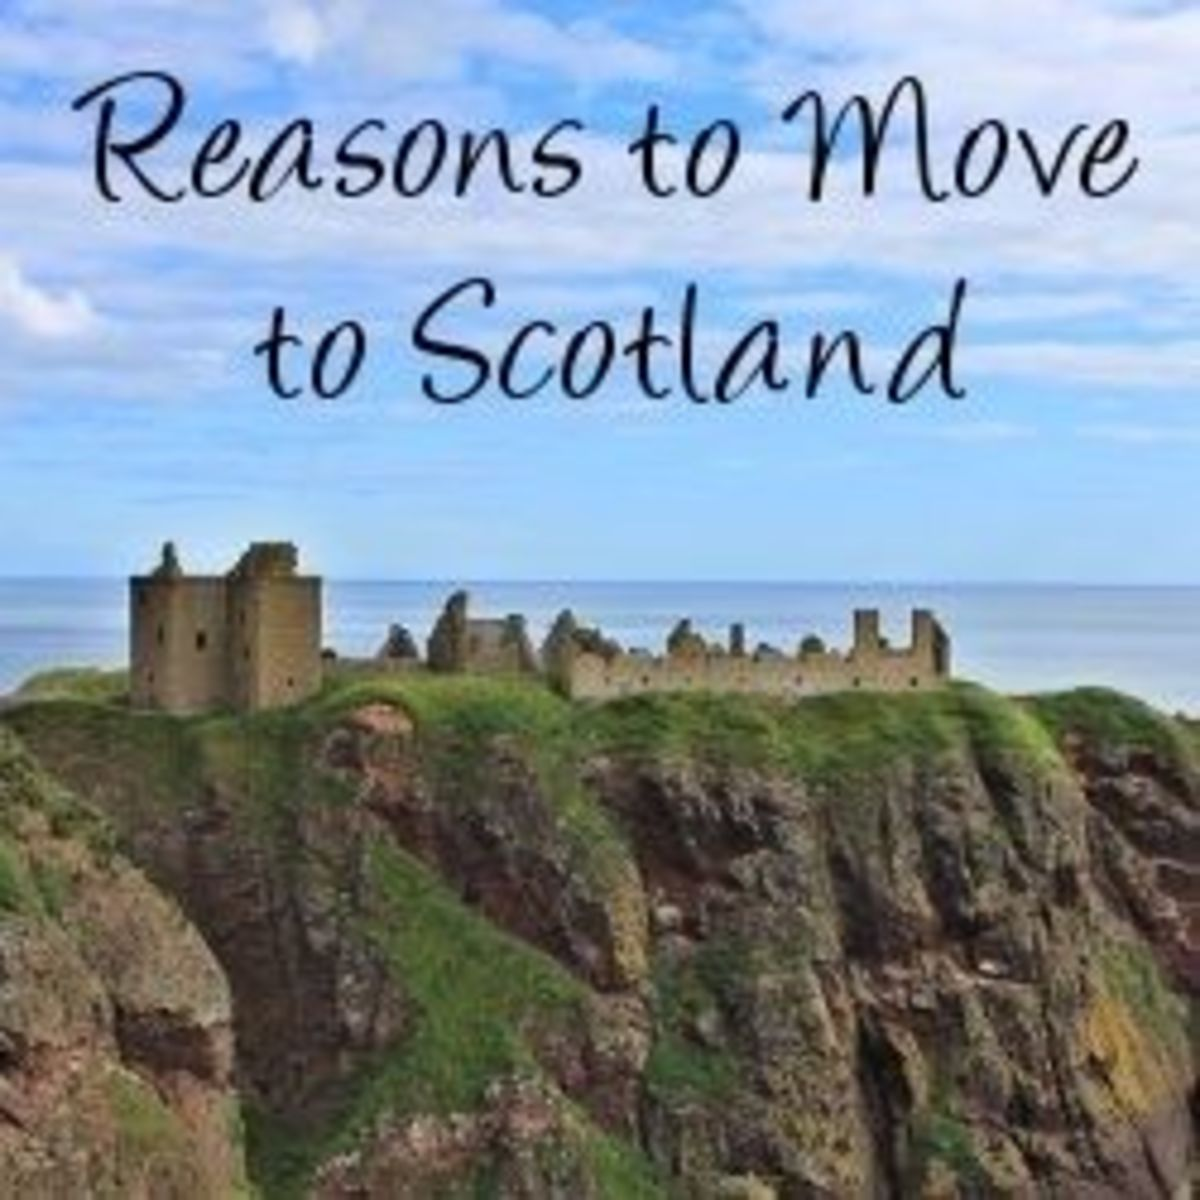 Reasons to Move to Scotland